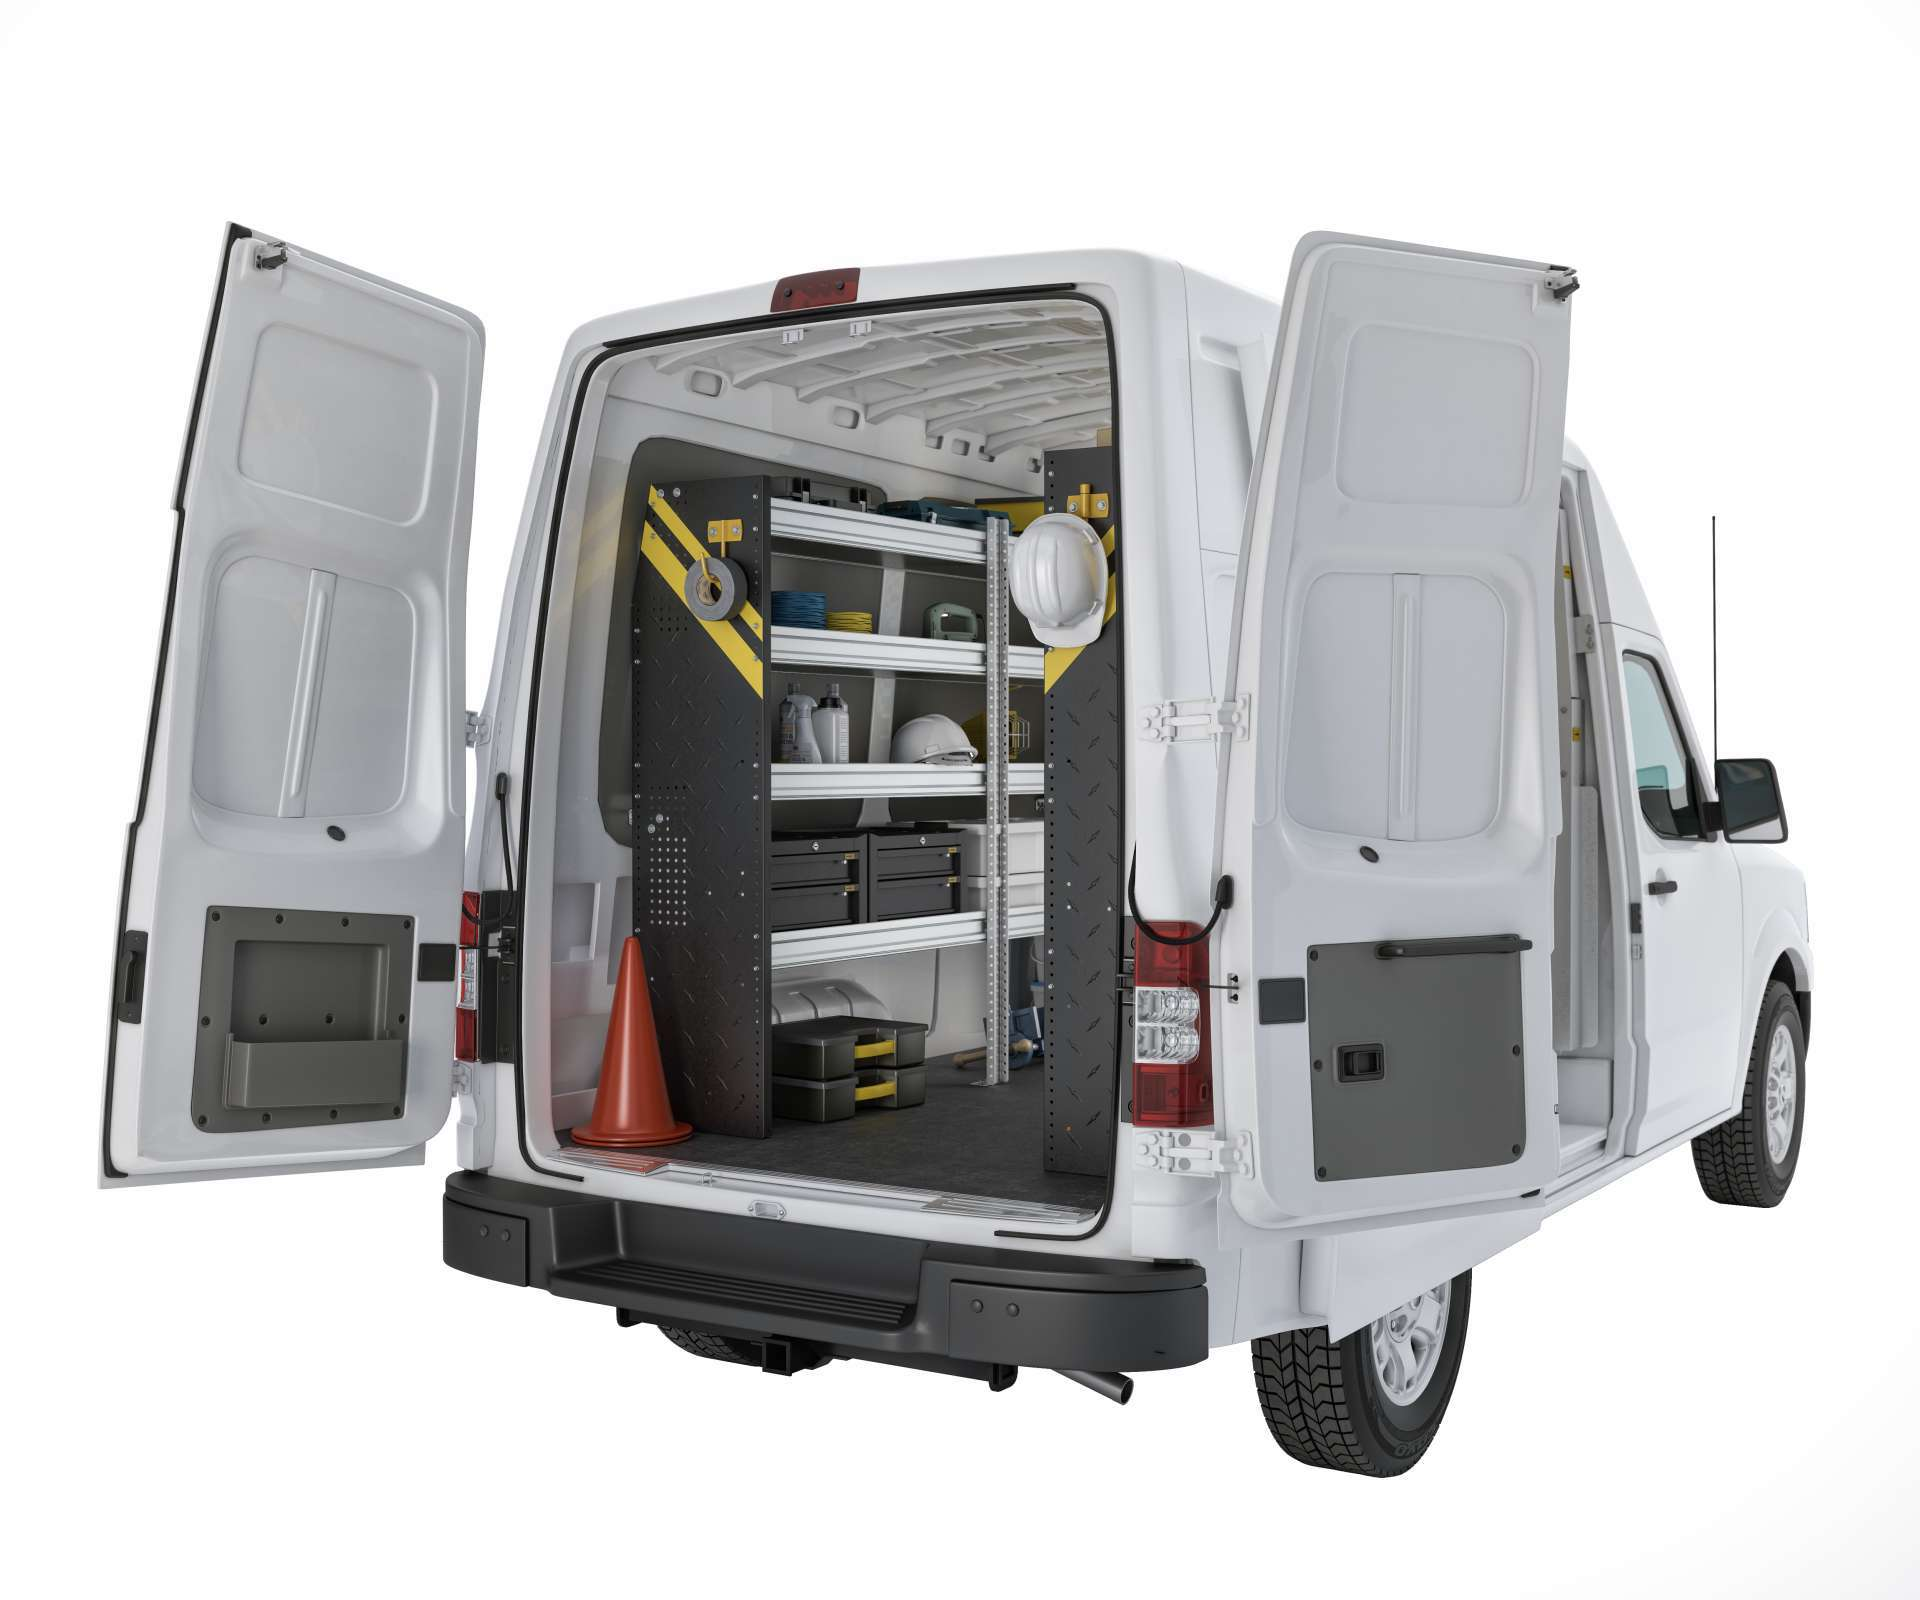 Locksmith Van Setup - Ranger Design